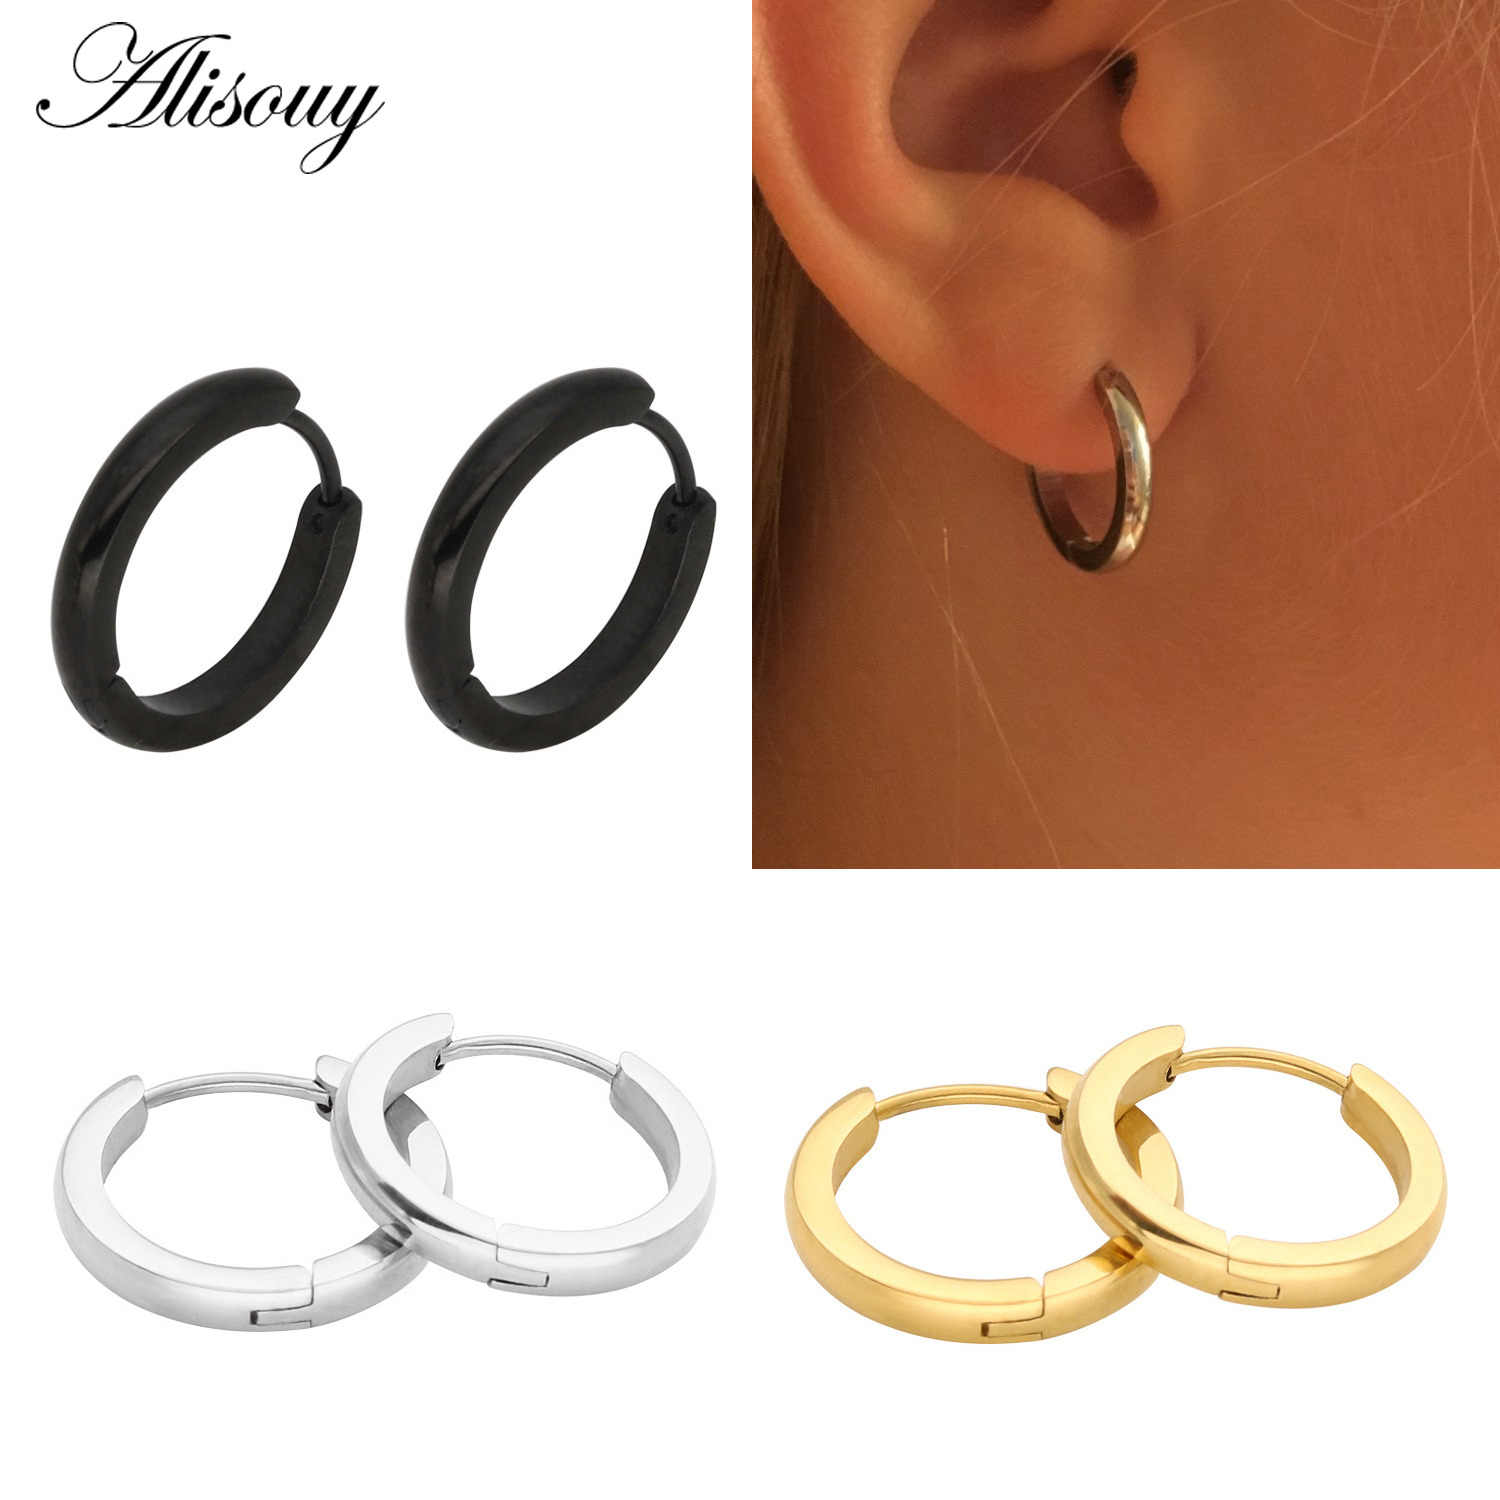 74ecb63ff Alisouy 2mm width 1Pair Mens Women Stainless Steel hip hop Helix Ear Circle  Hoop Earrings Huggies